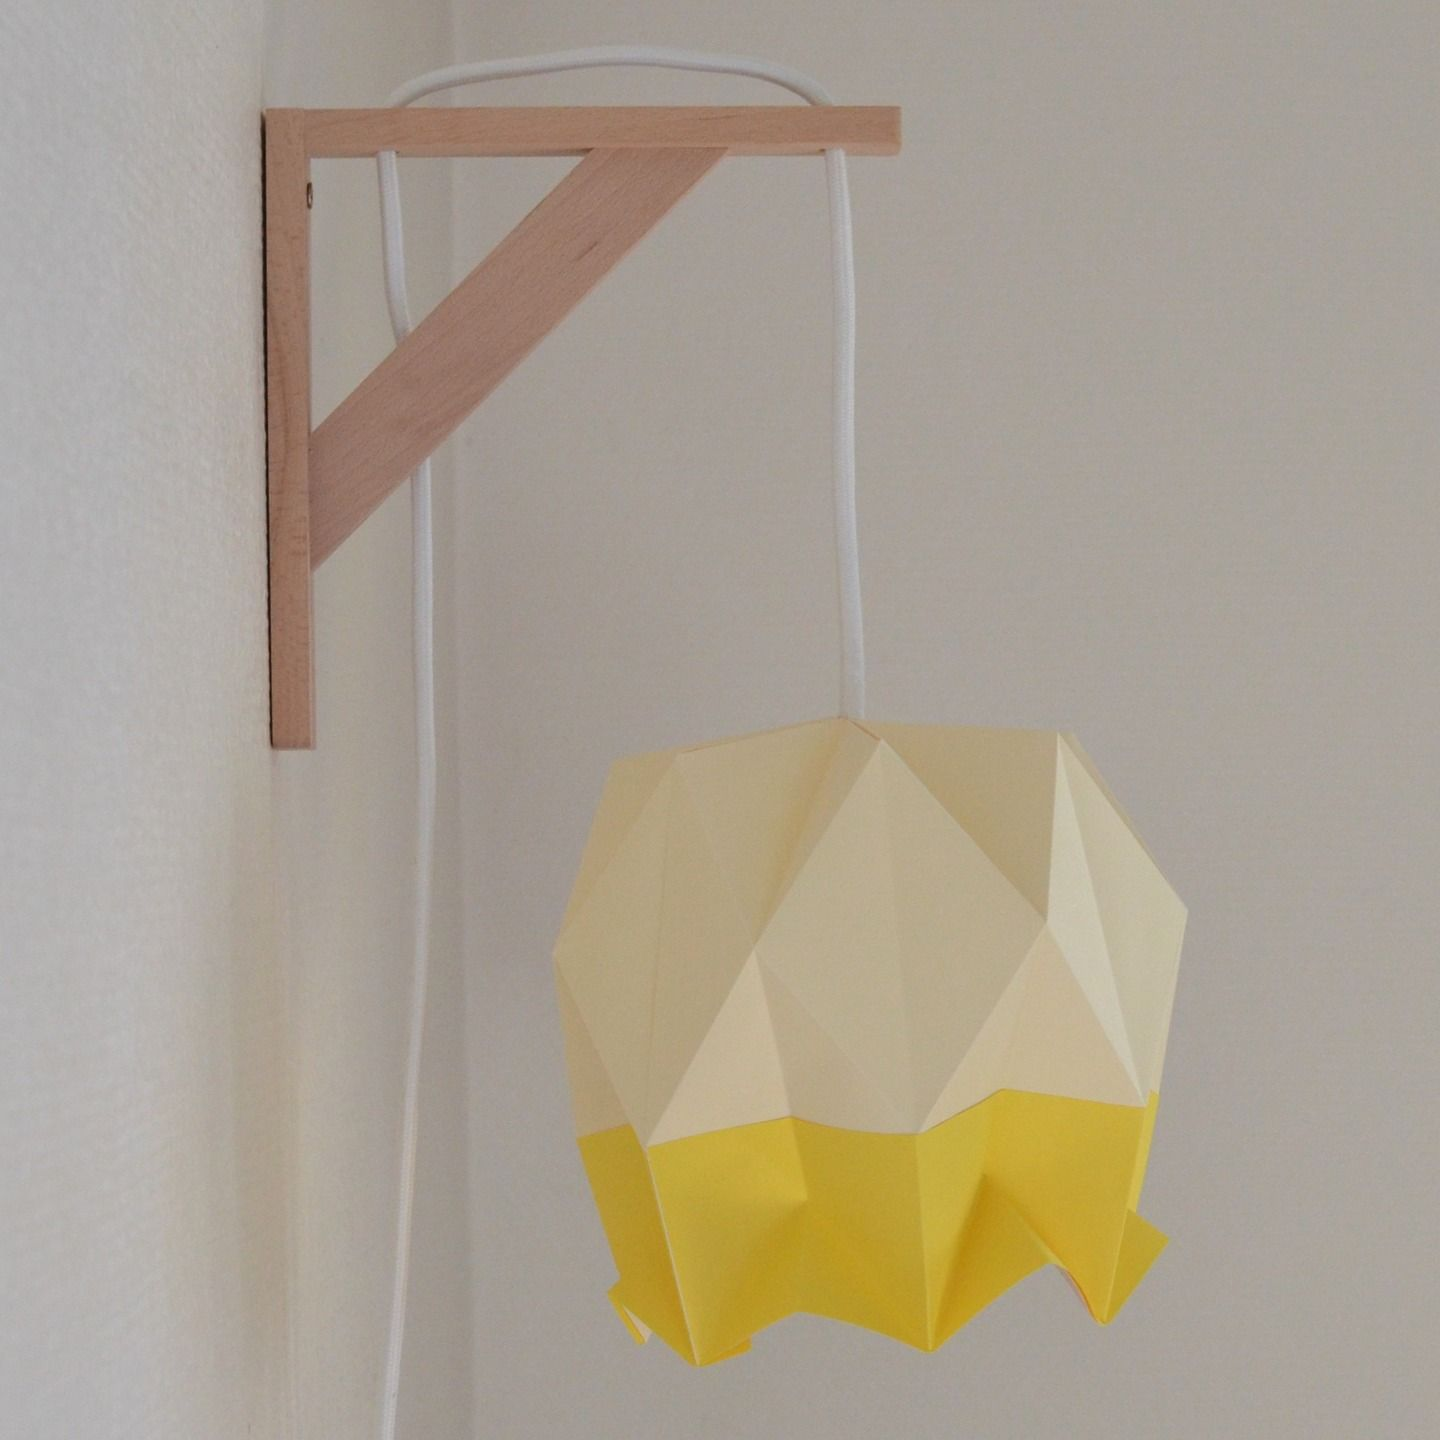 Applique Suspension Lotus d inspiration scandinave Luminaires par